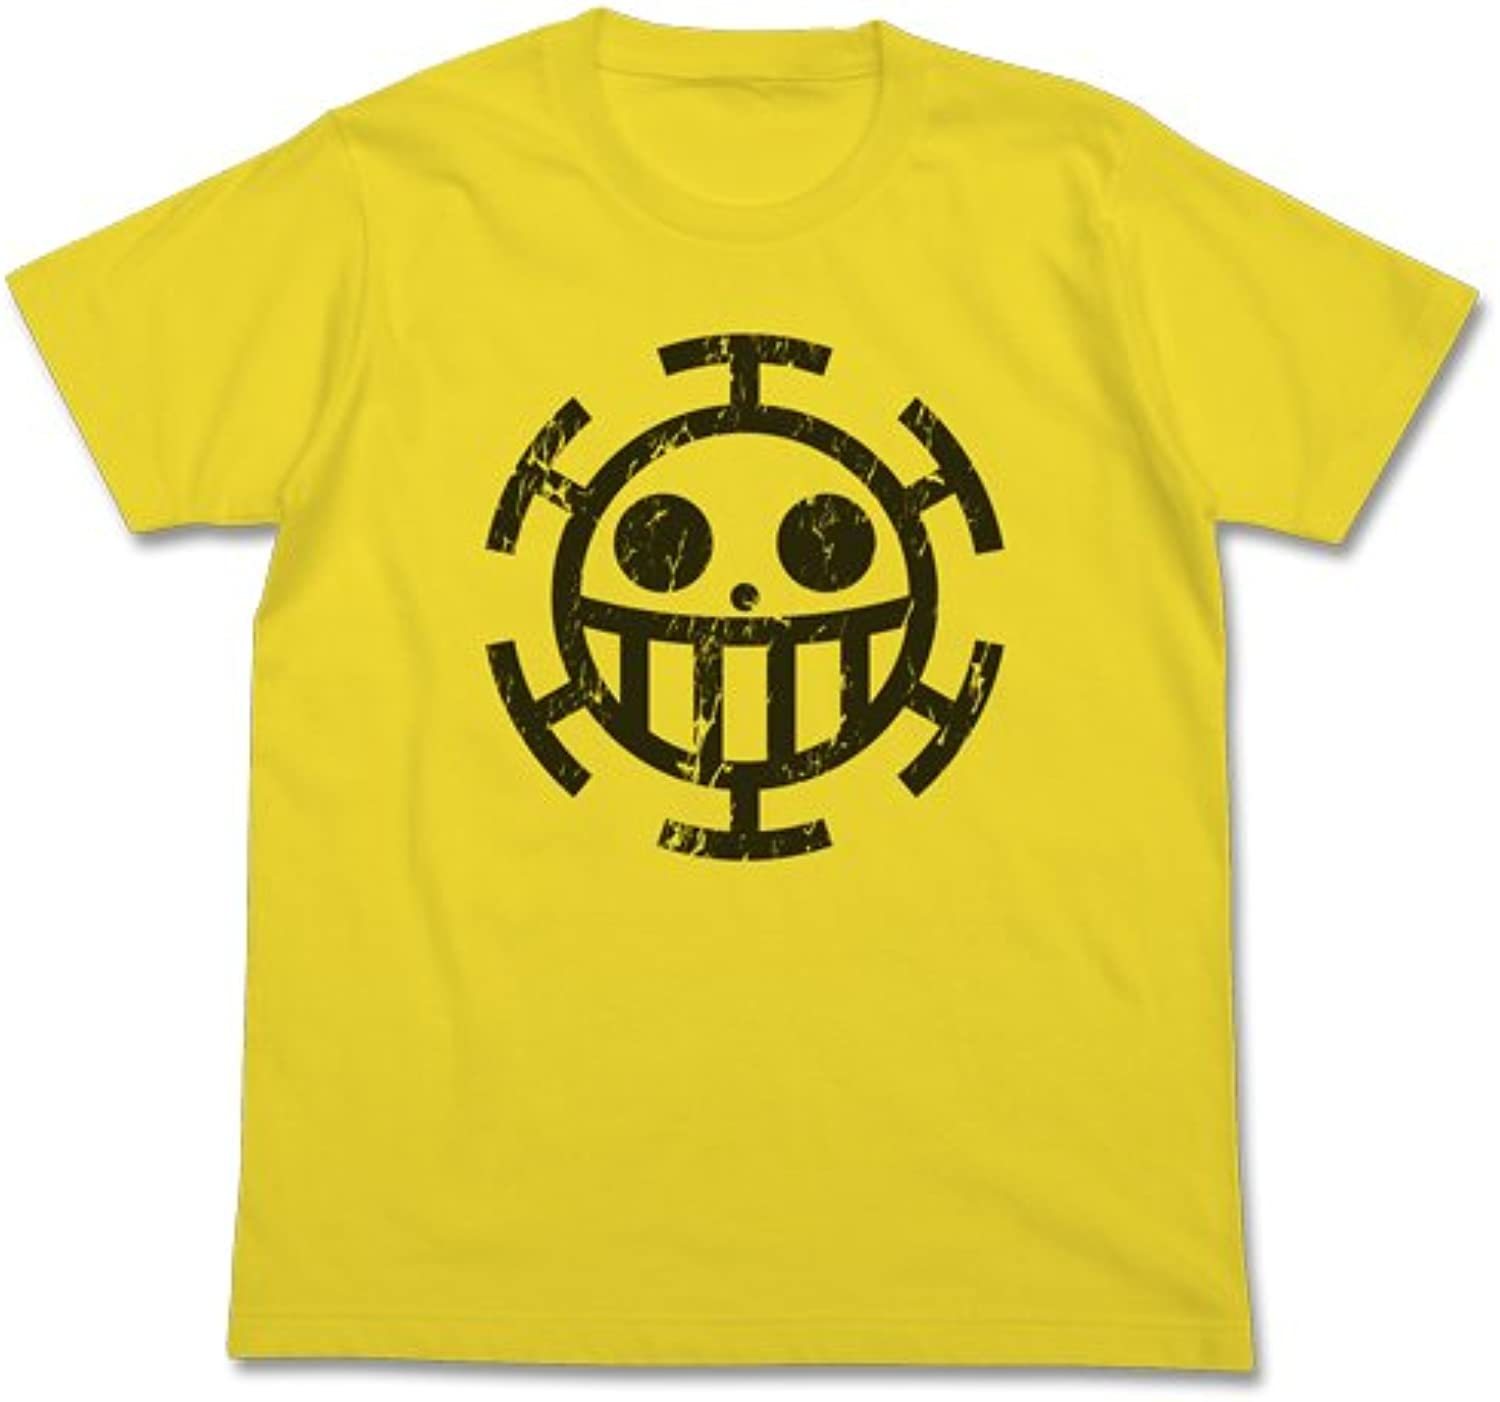 Pirates Tshirt Yellow Size One Piece Heart  S (japan import)